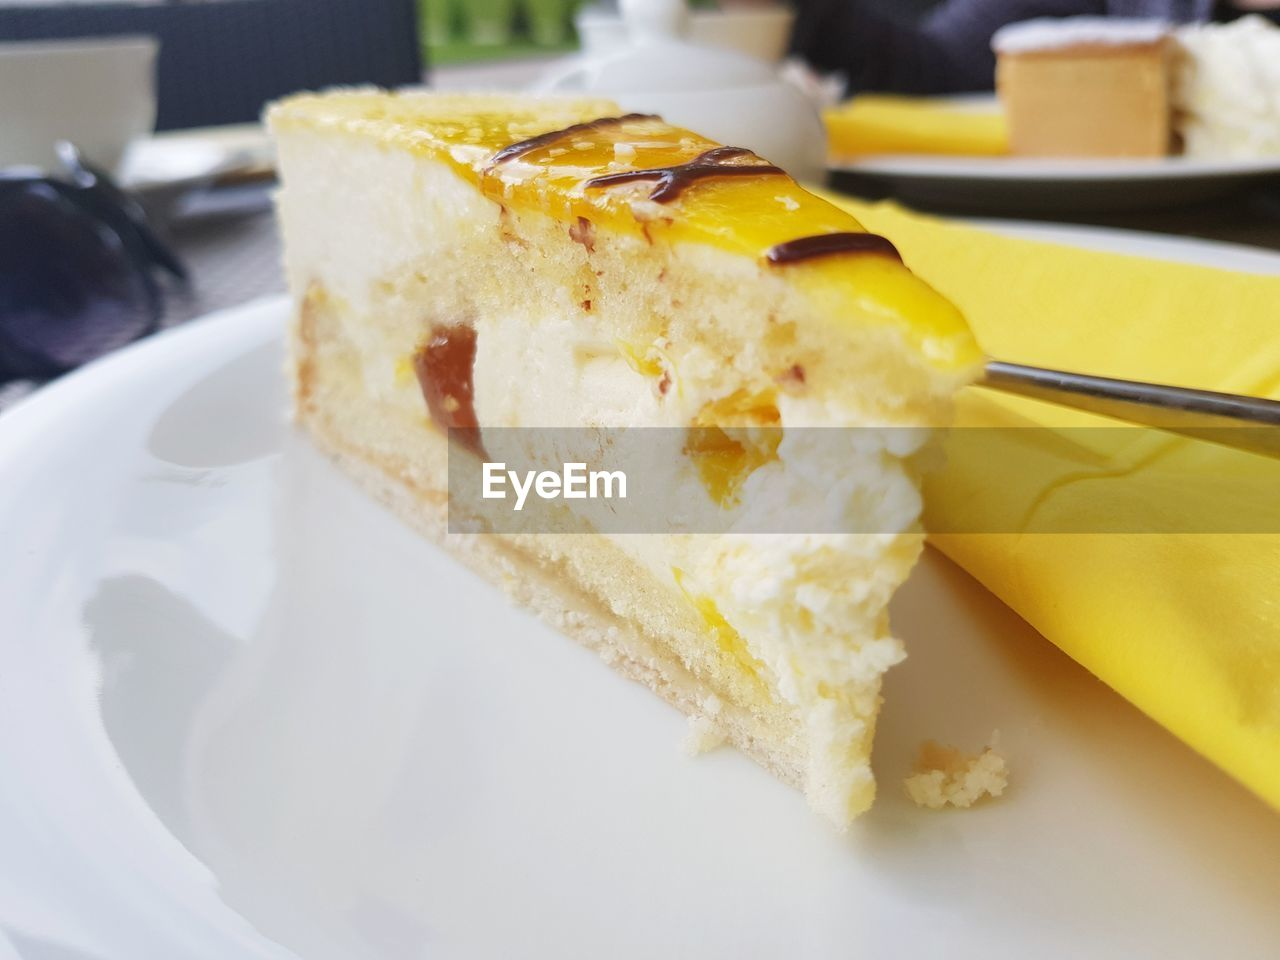 food and drink, food, plate, sweet food, indulgence, freshness, sweet, ready-to-eat, dessert, still life, cake, temptation, close-up, eating utensil, serving size, indoors, slice of cake, baked, slice, kitchen utensil, no people, cheesecake, snack